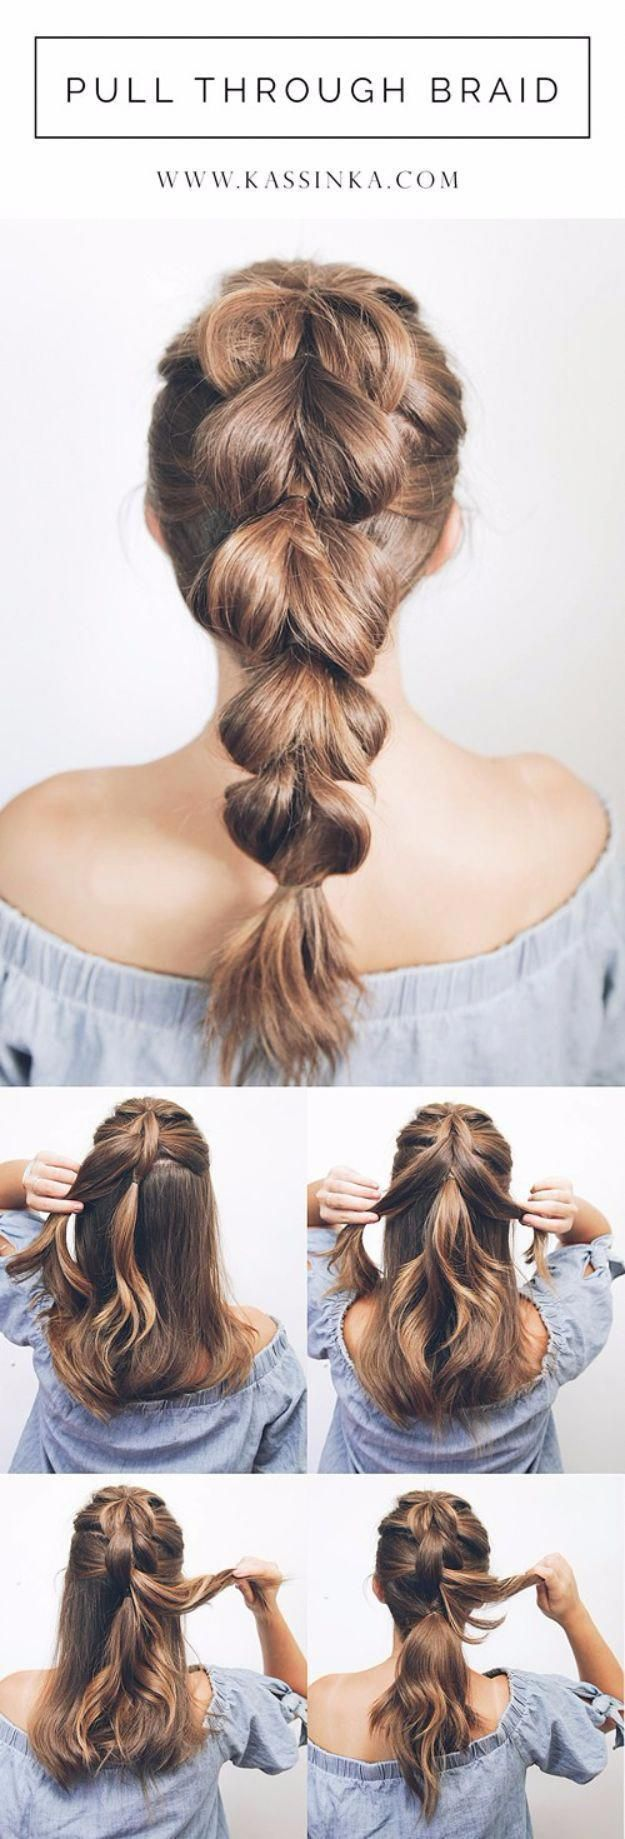 Cool Hair Tutorials for Summer  Pull Through Braid Tutorial  Easy Hairstyles a  Cool Hair Tutorials for Summer  Pull Through Braid Tutorial  Easy Hairstyles a